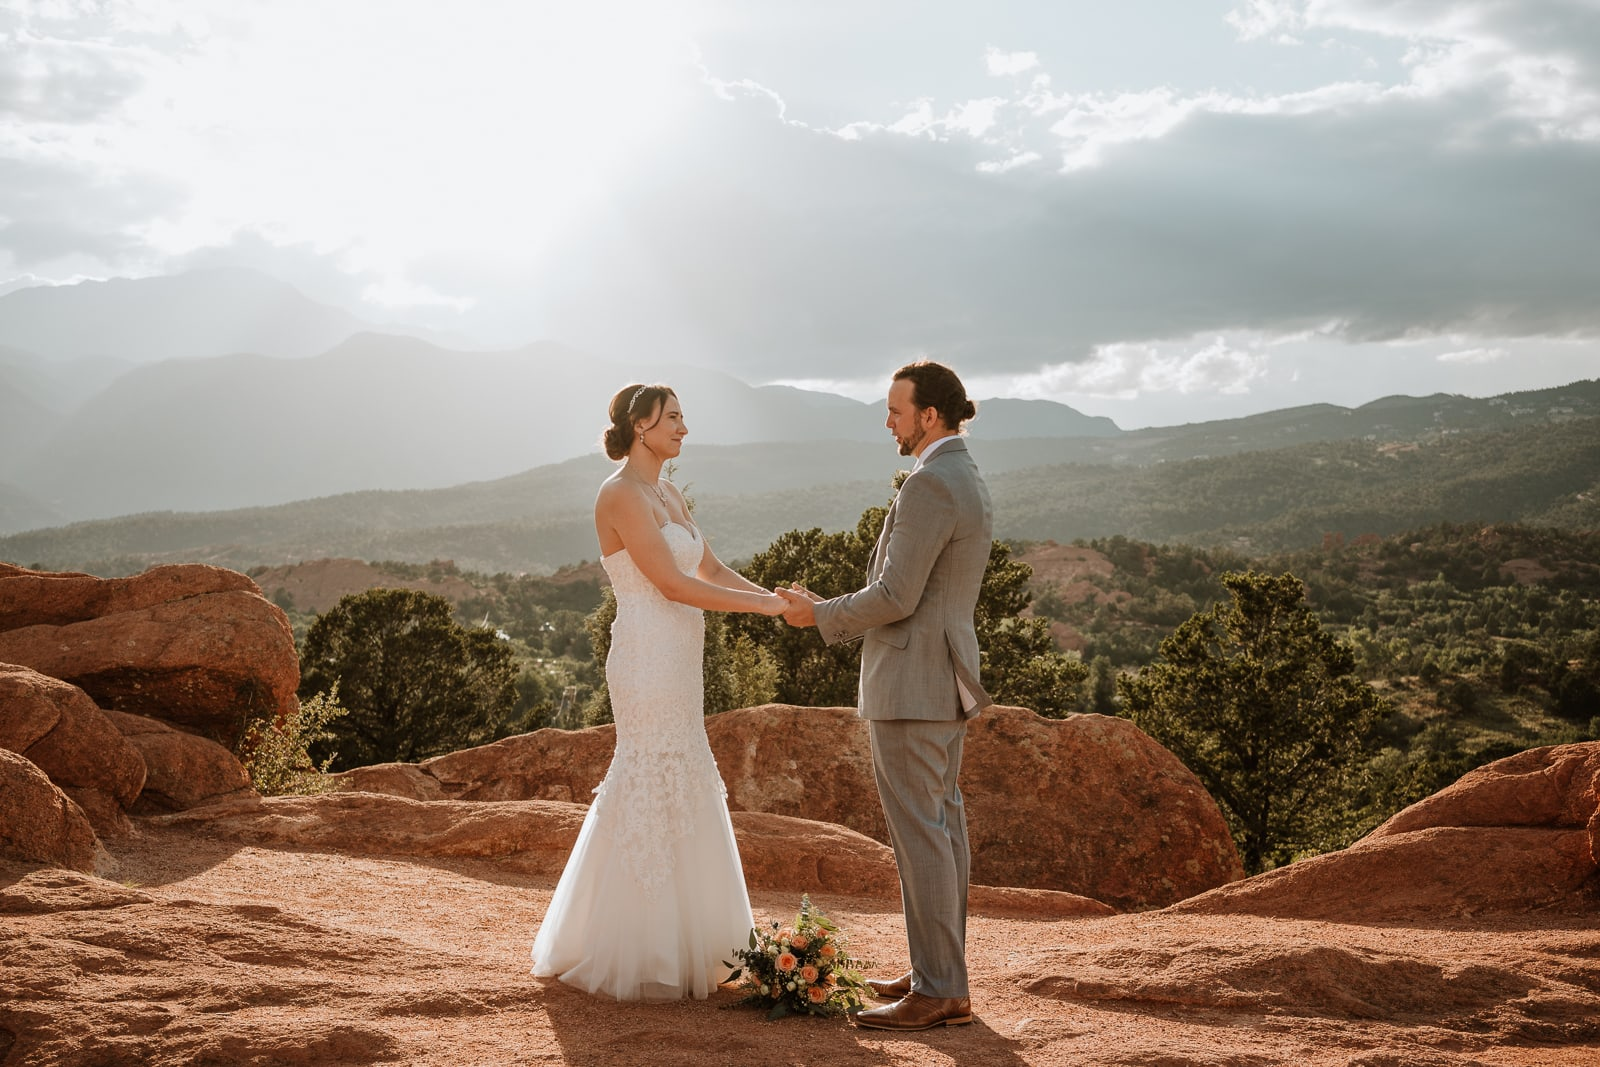 Bride and groom hold hands as they say their vows by heart at High Point Overlook in Garden of the Gods